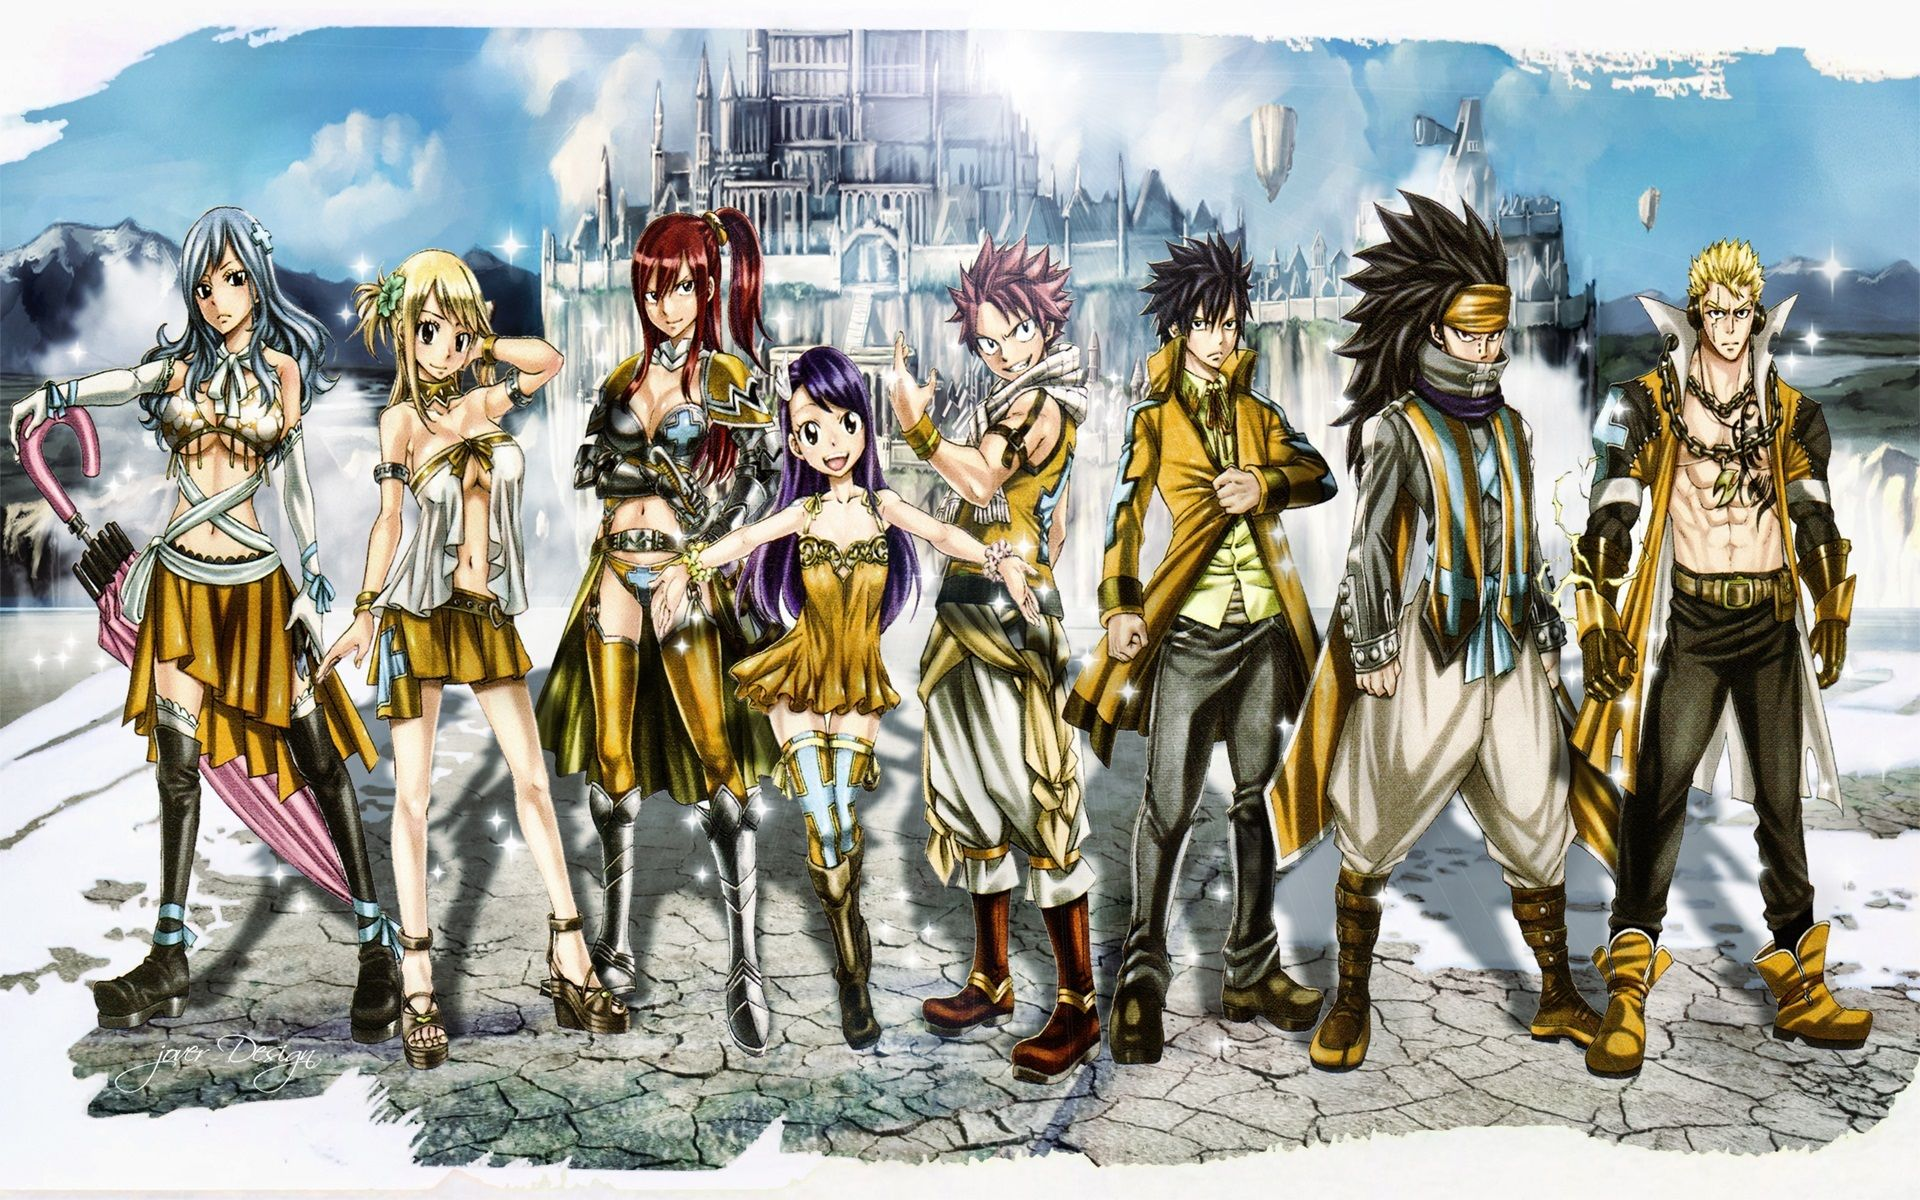 fairy tail wallpaper hd 1080p Wallpaper Fairy tail